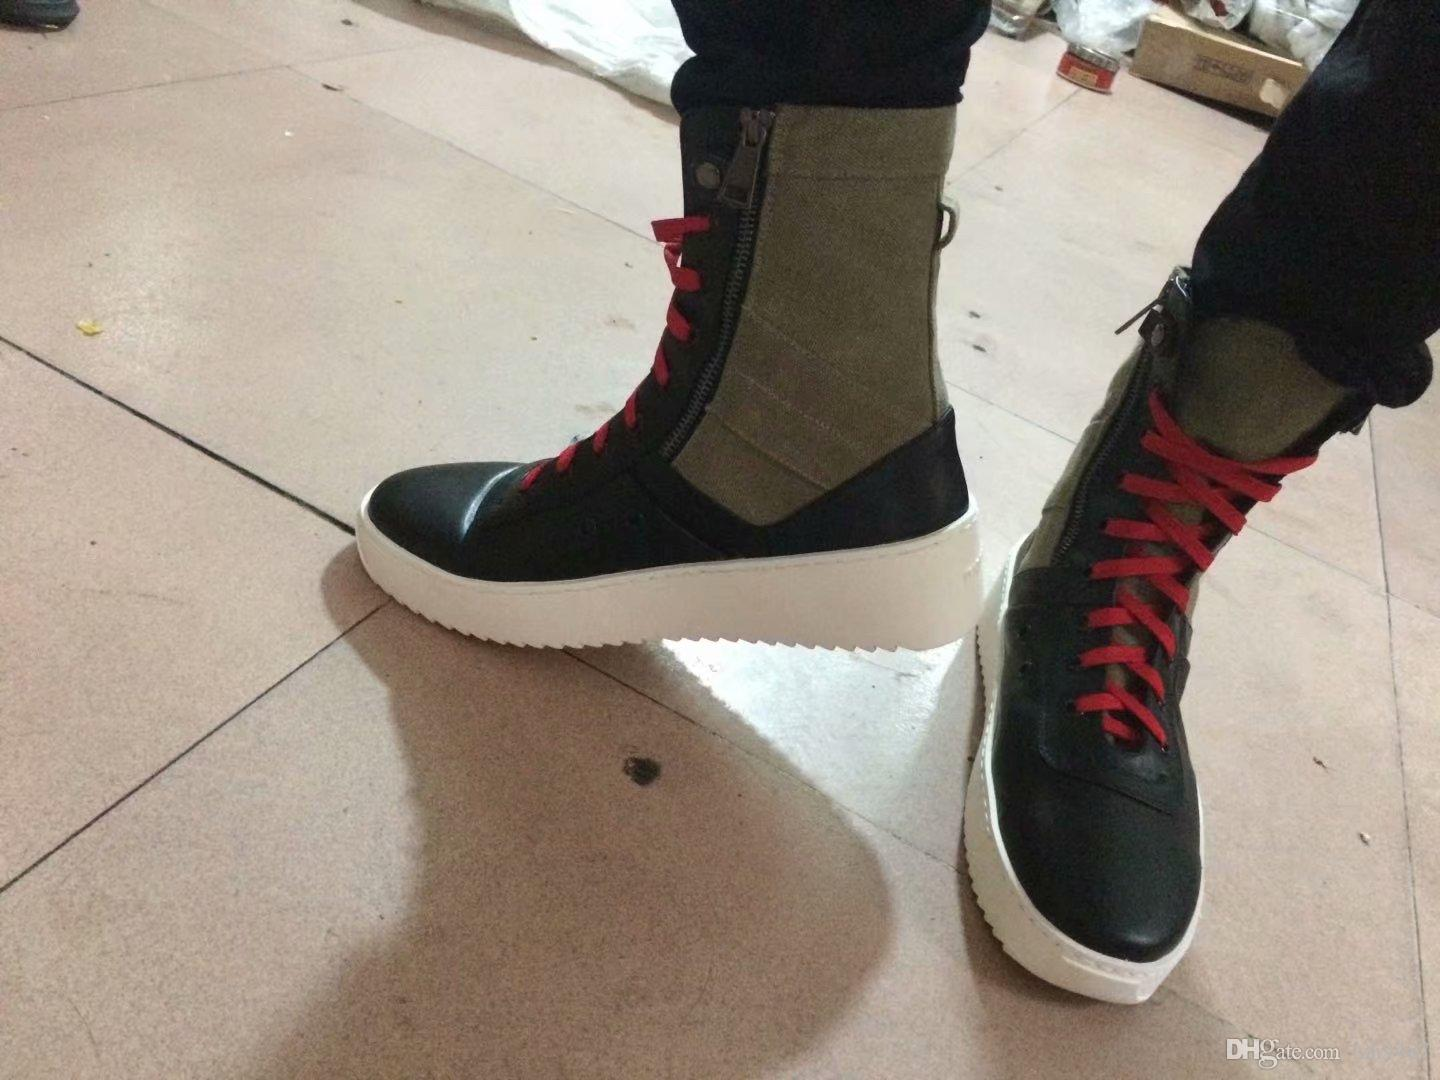 a4898e1016fa3 2019new FEAR OF GOD Military High Top Sneakers Mixed Color Suede Gum Grey  Nubuck Boot Fog Jerry Lorenzo Kanye Black Nylon Running Shoes Western Boots  Shoe ...